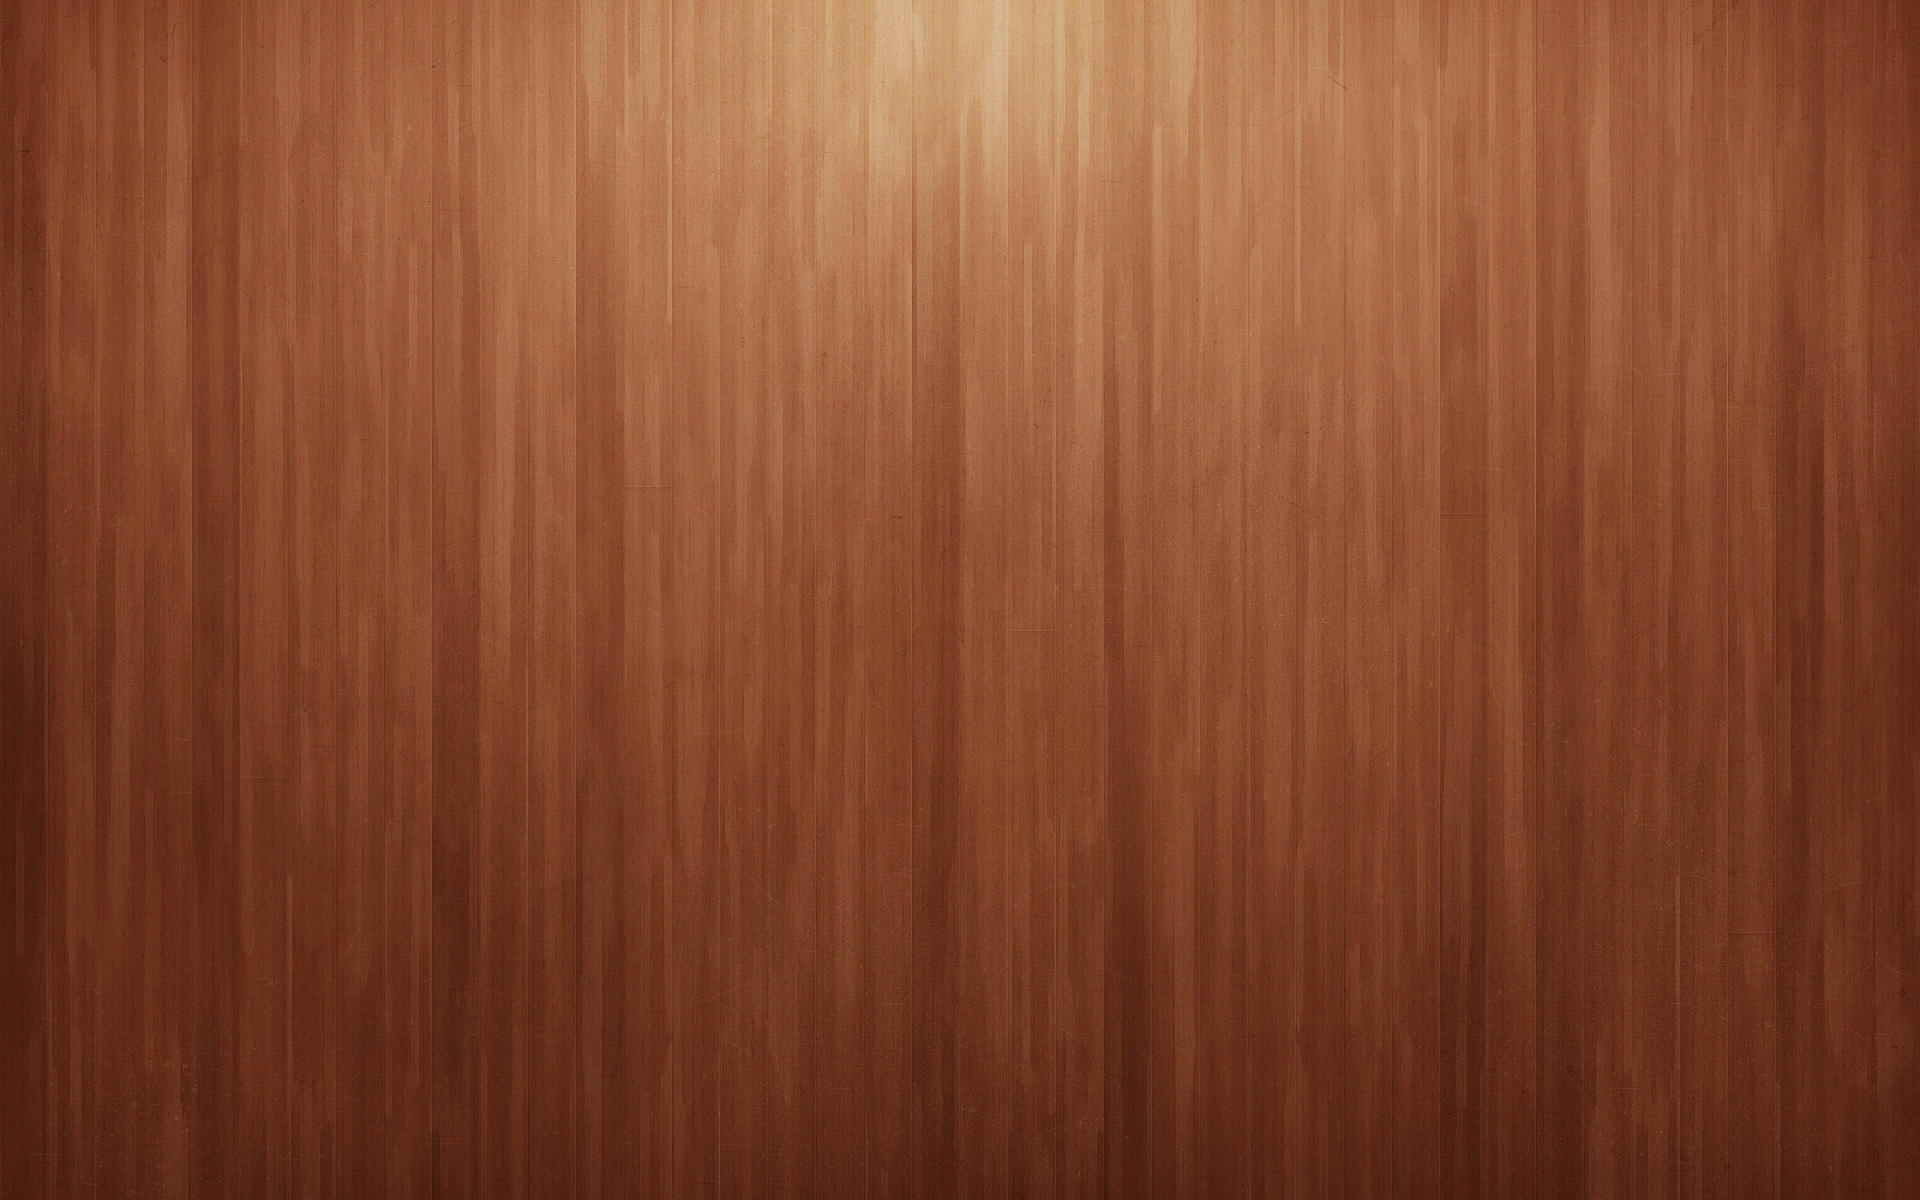 Hand Crafted Wood Texture Wood Pattern Wallpaper Wood Wallpaper Picture On Wood